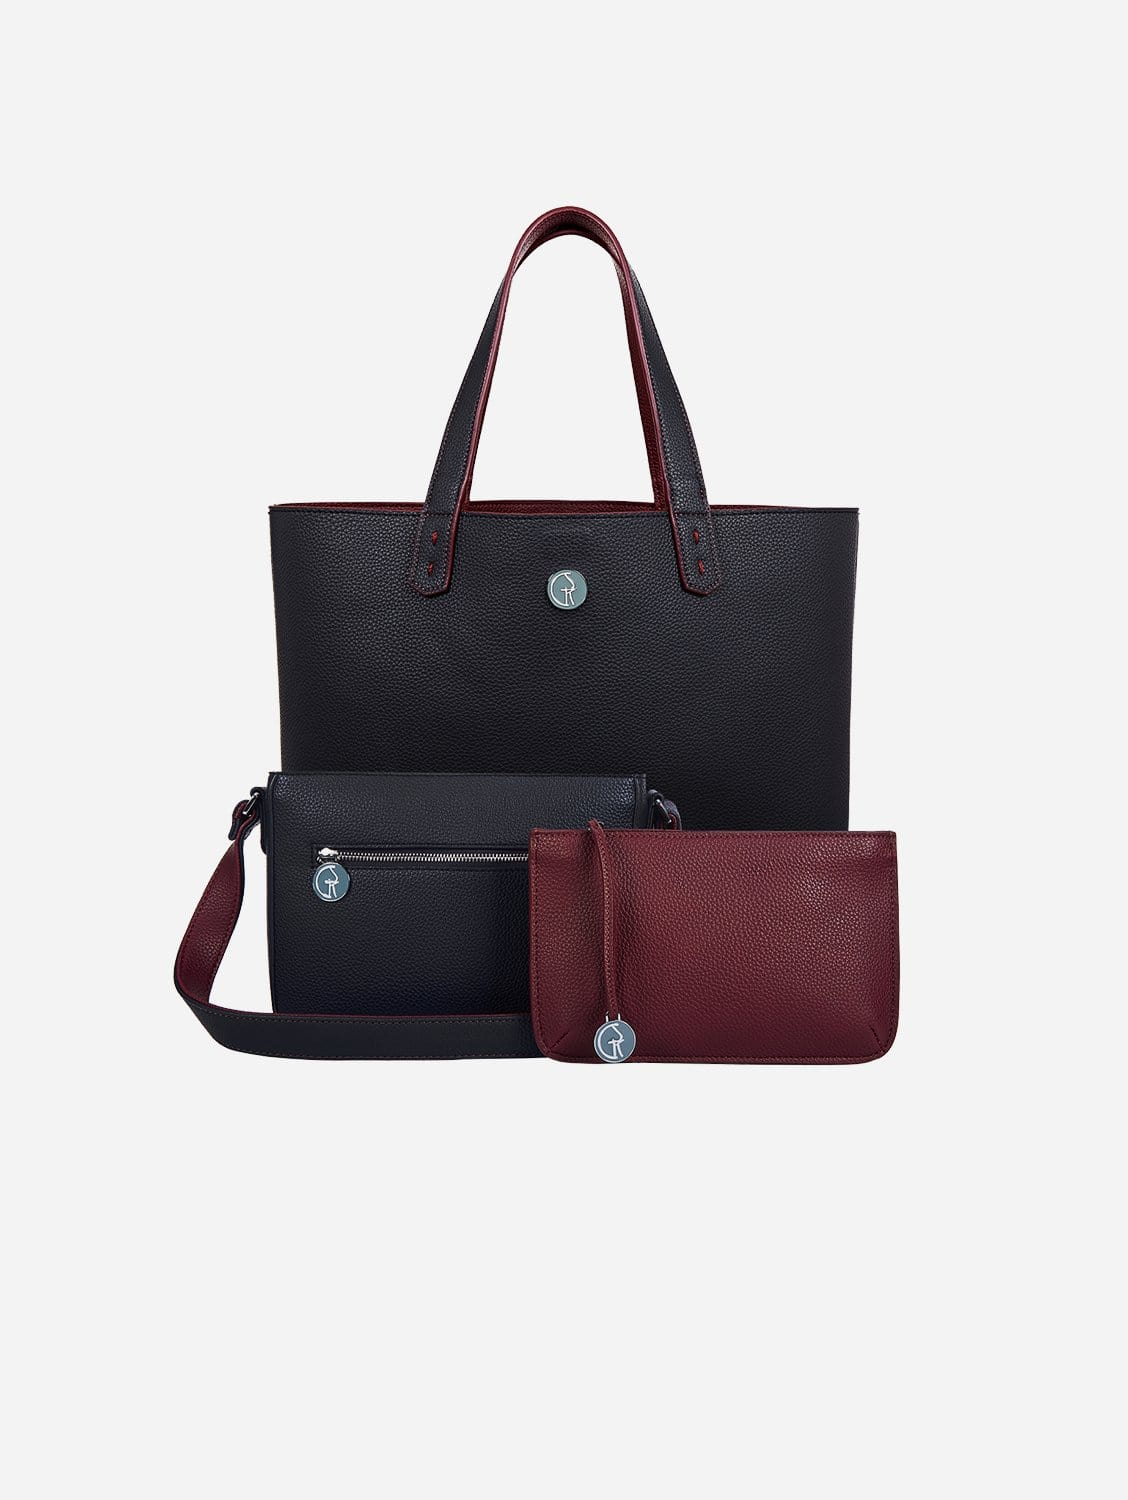 3 Vegan Leather Bags in 1 | Blackberry & Currant